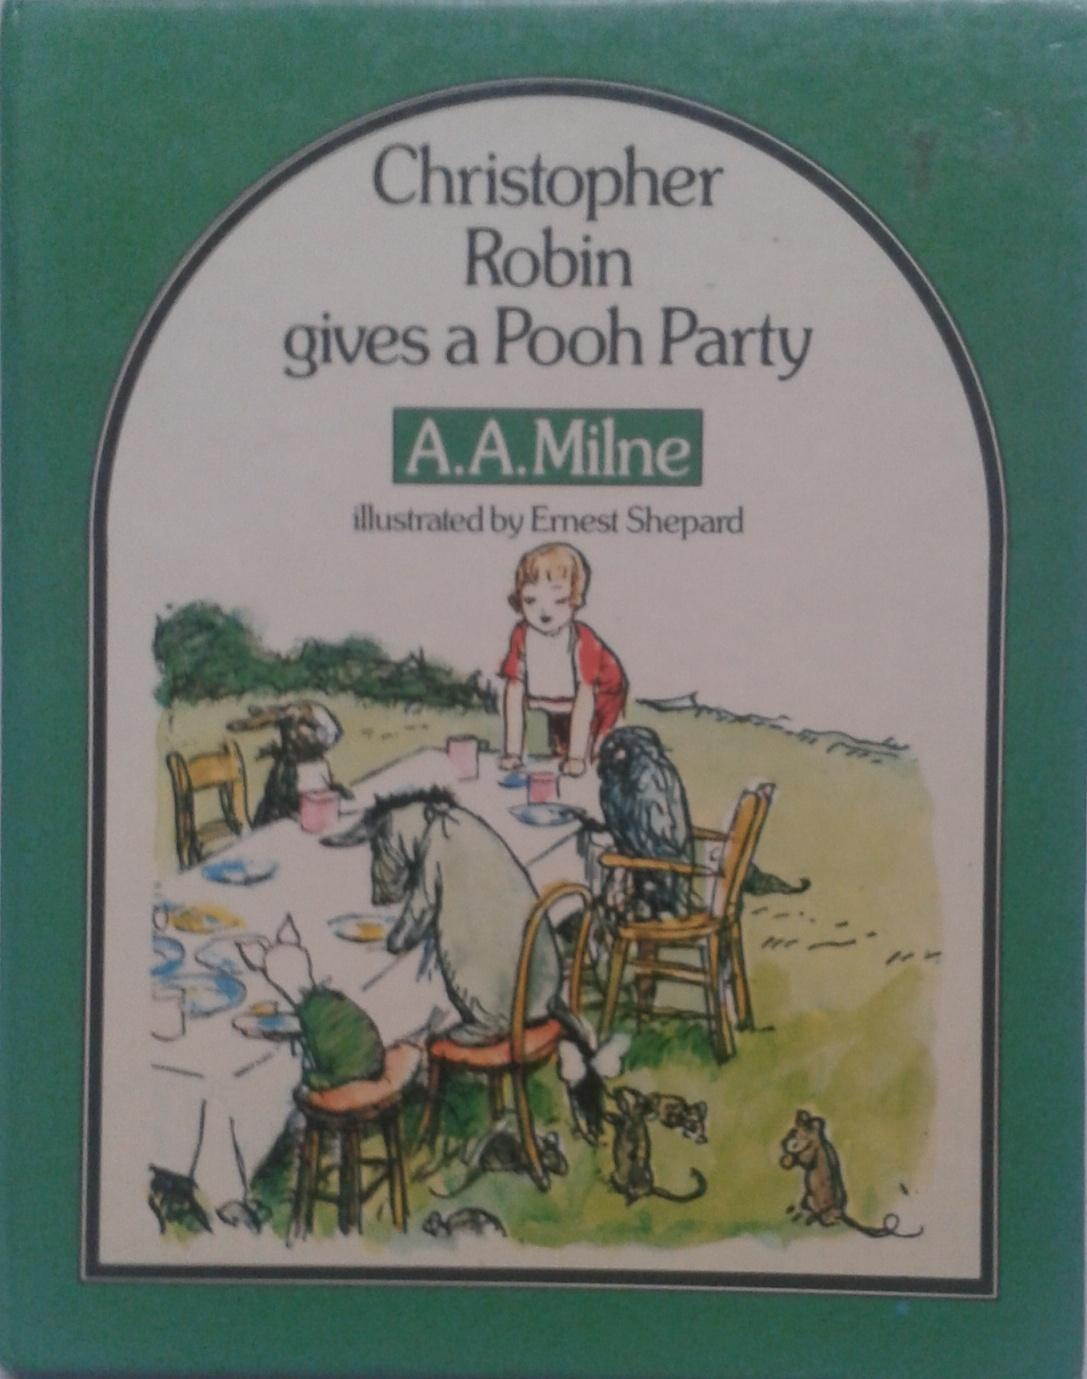 Christopher Robin Gives A Pooh Party AAMilne